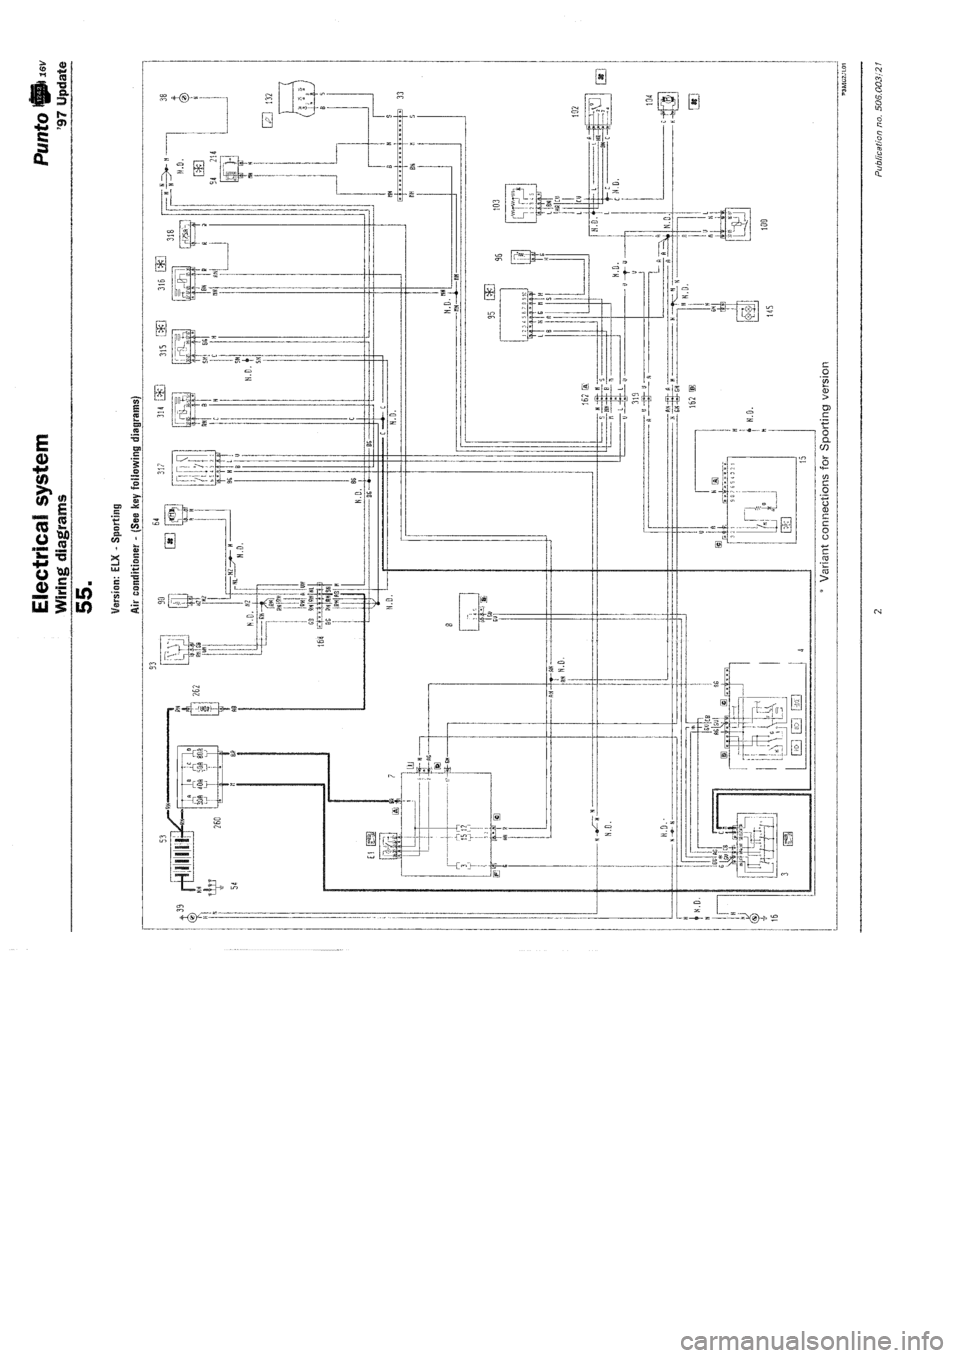 Fiat Fiorino Wiring Diagram. Fiat. Wiring Diagram Images